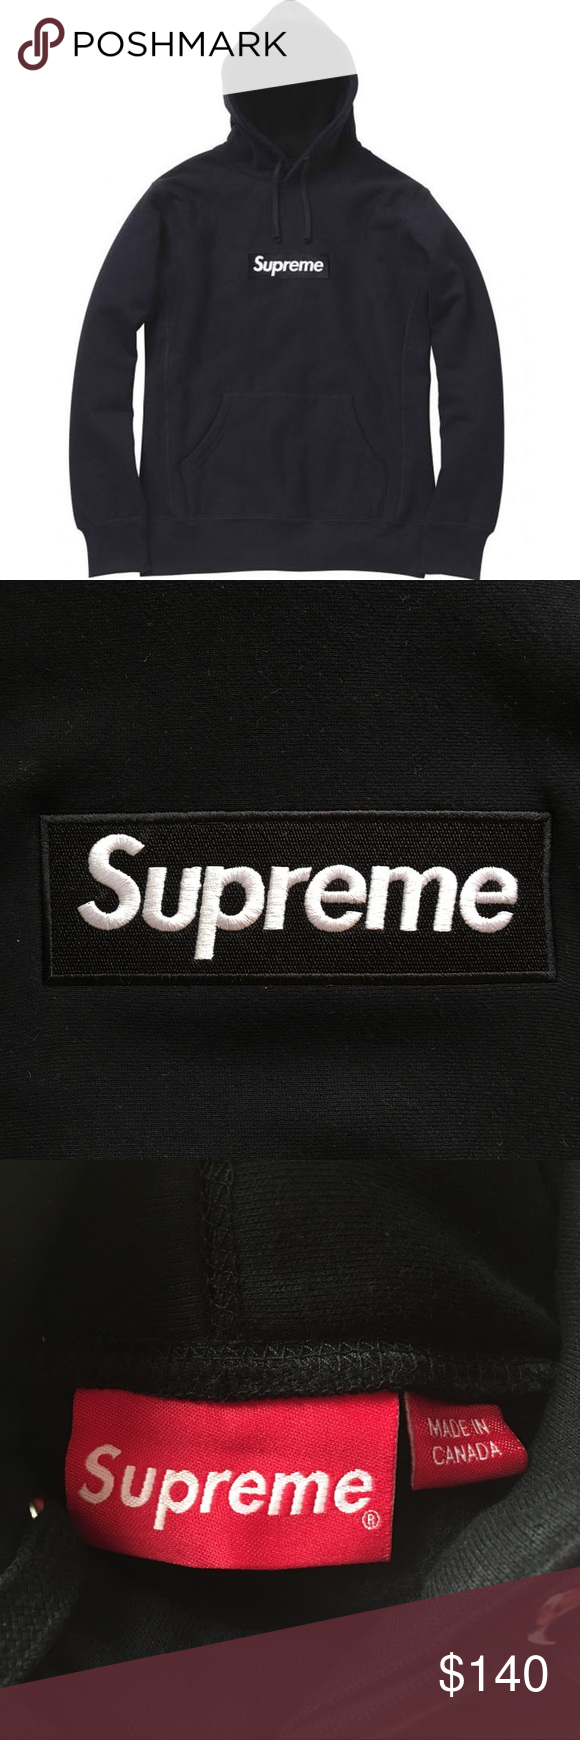 Black Supreme Box Logo Pullover Hooded Sweatshirt Fw13 Hoodie From Supreme Product Is Same As Photos Shown And Wil Sweatshirt Shirt Sweatshirts Supreme Shirt [ 1740 x 580 Pixel ]